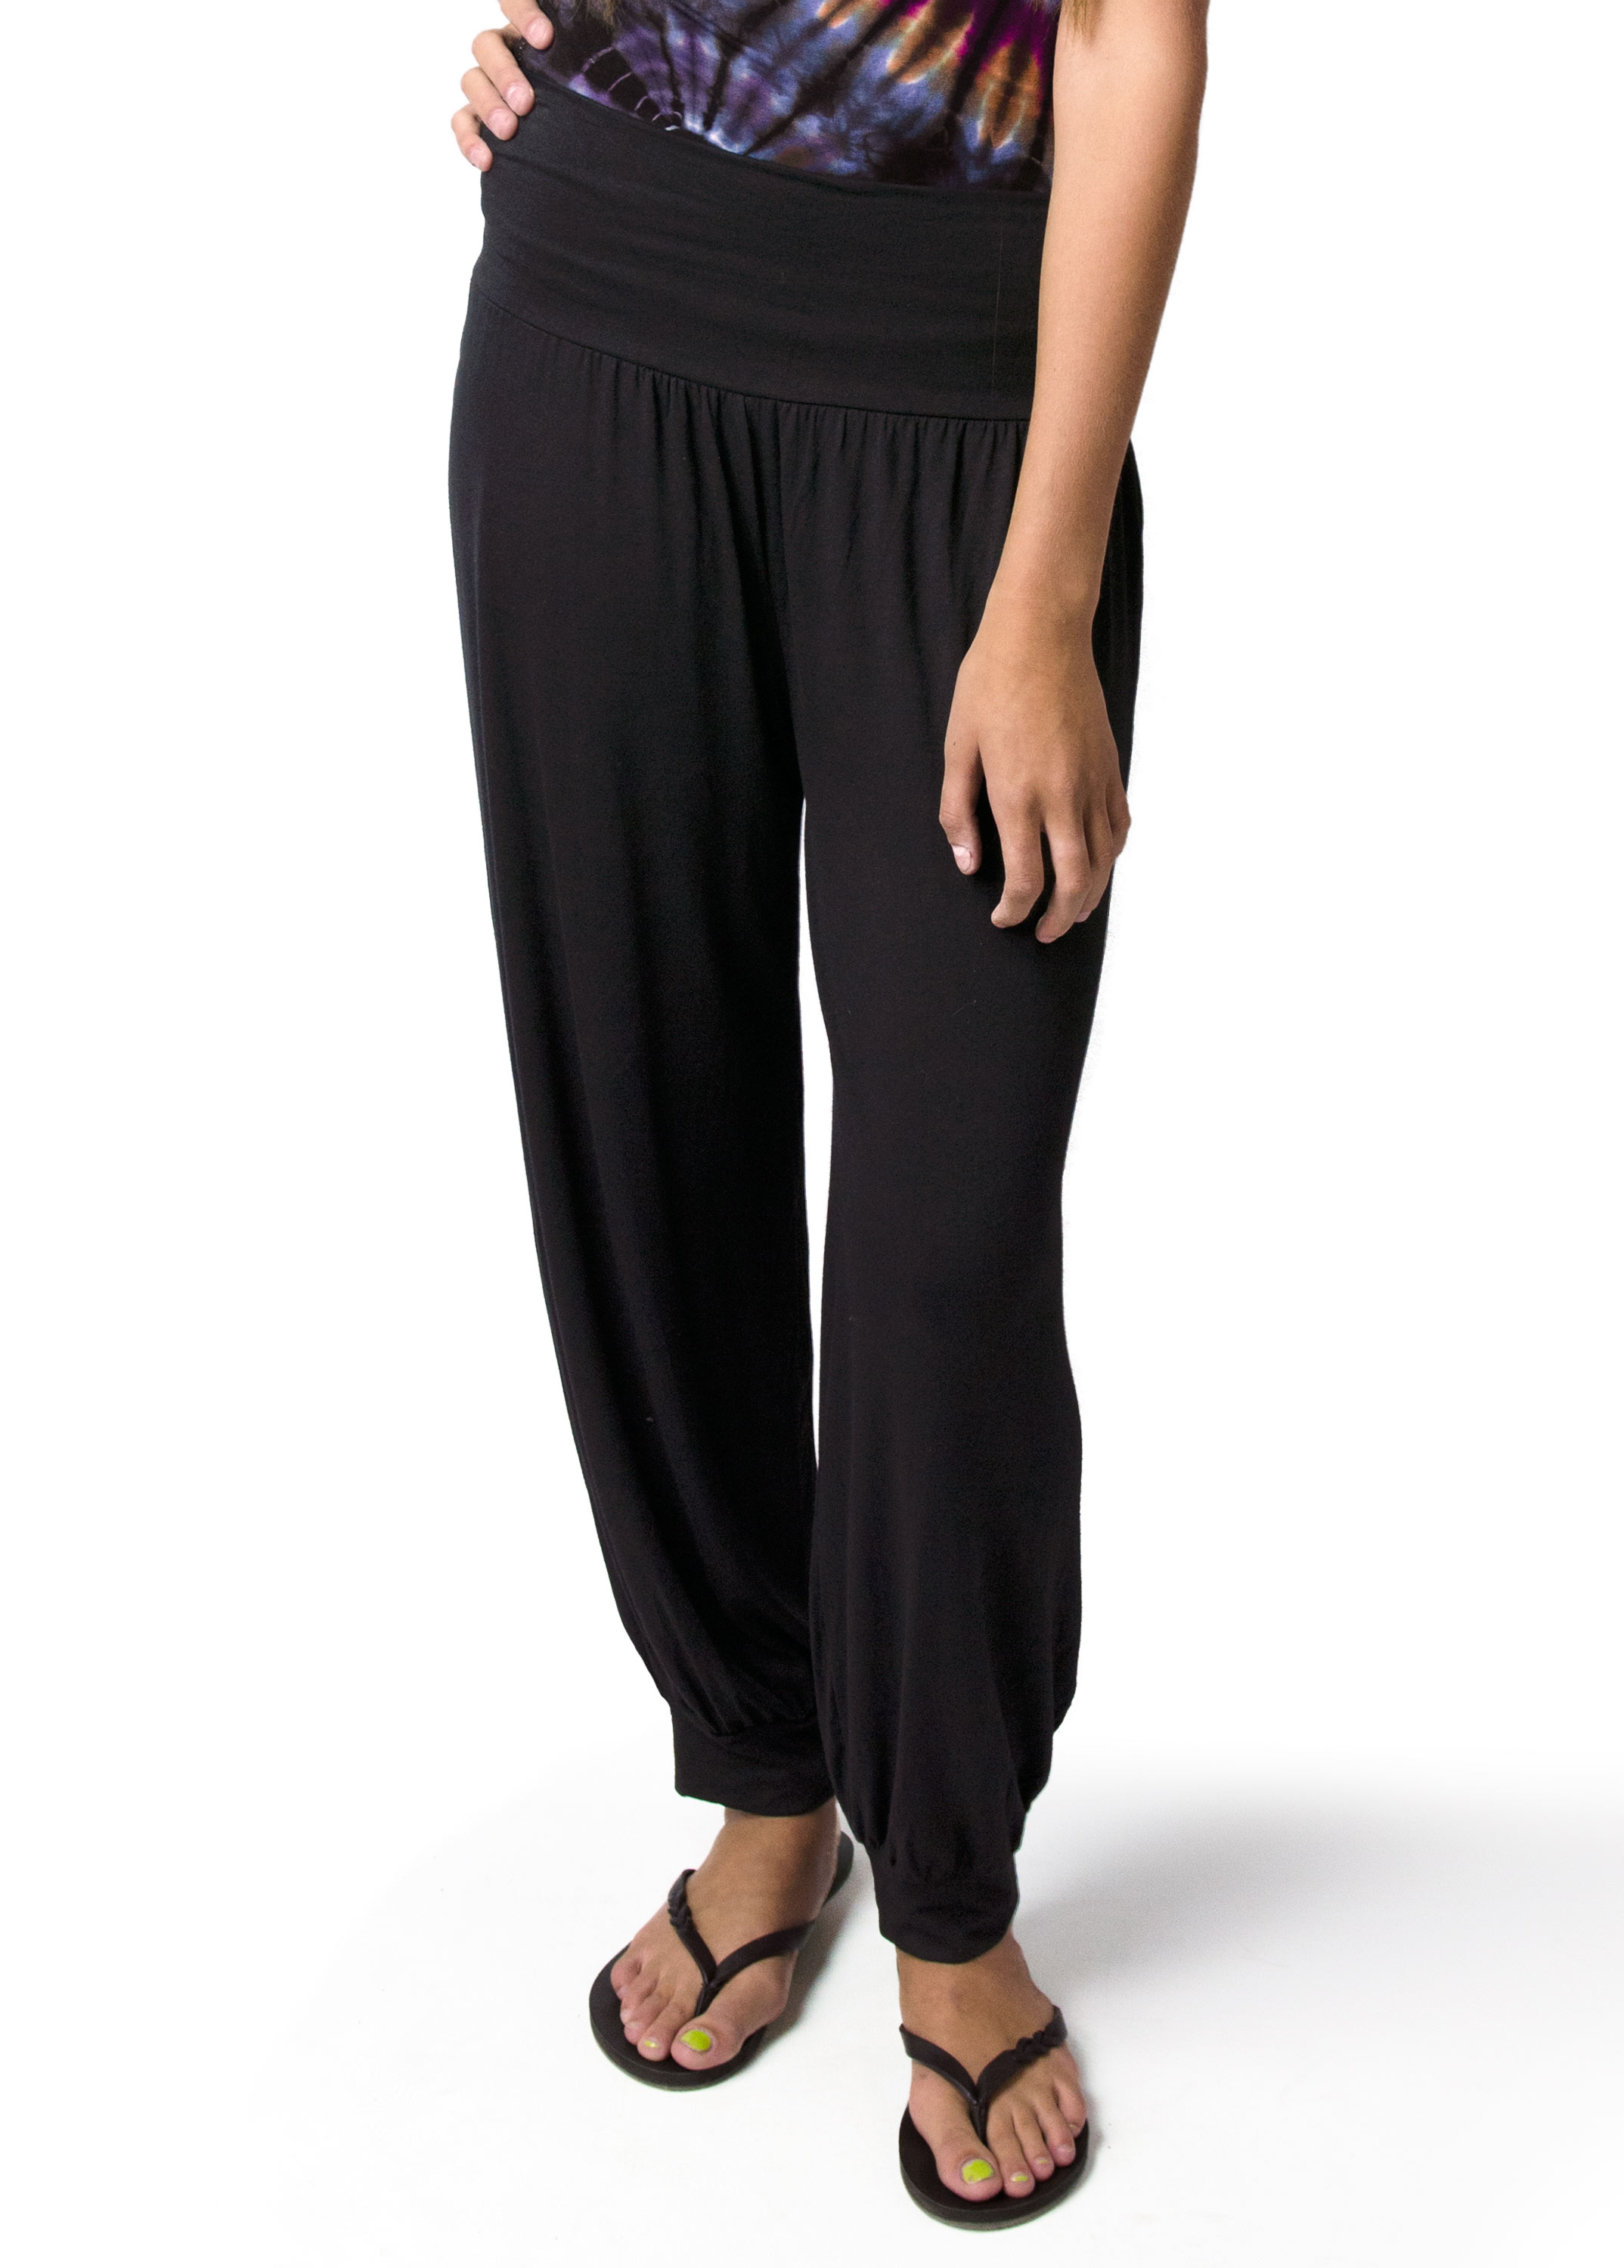 Harem Pants, Solid Color, Black  - 2365-K